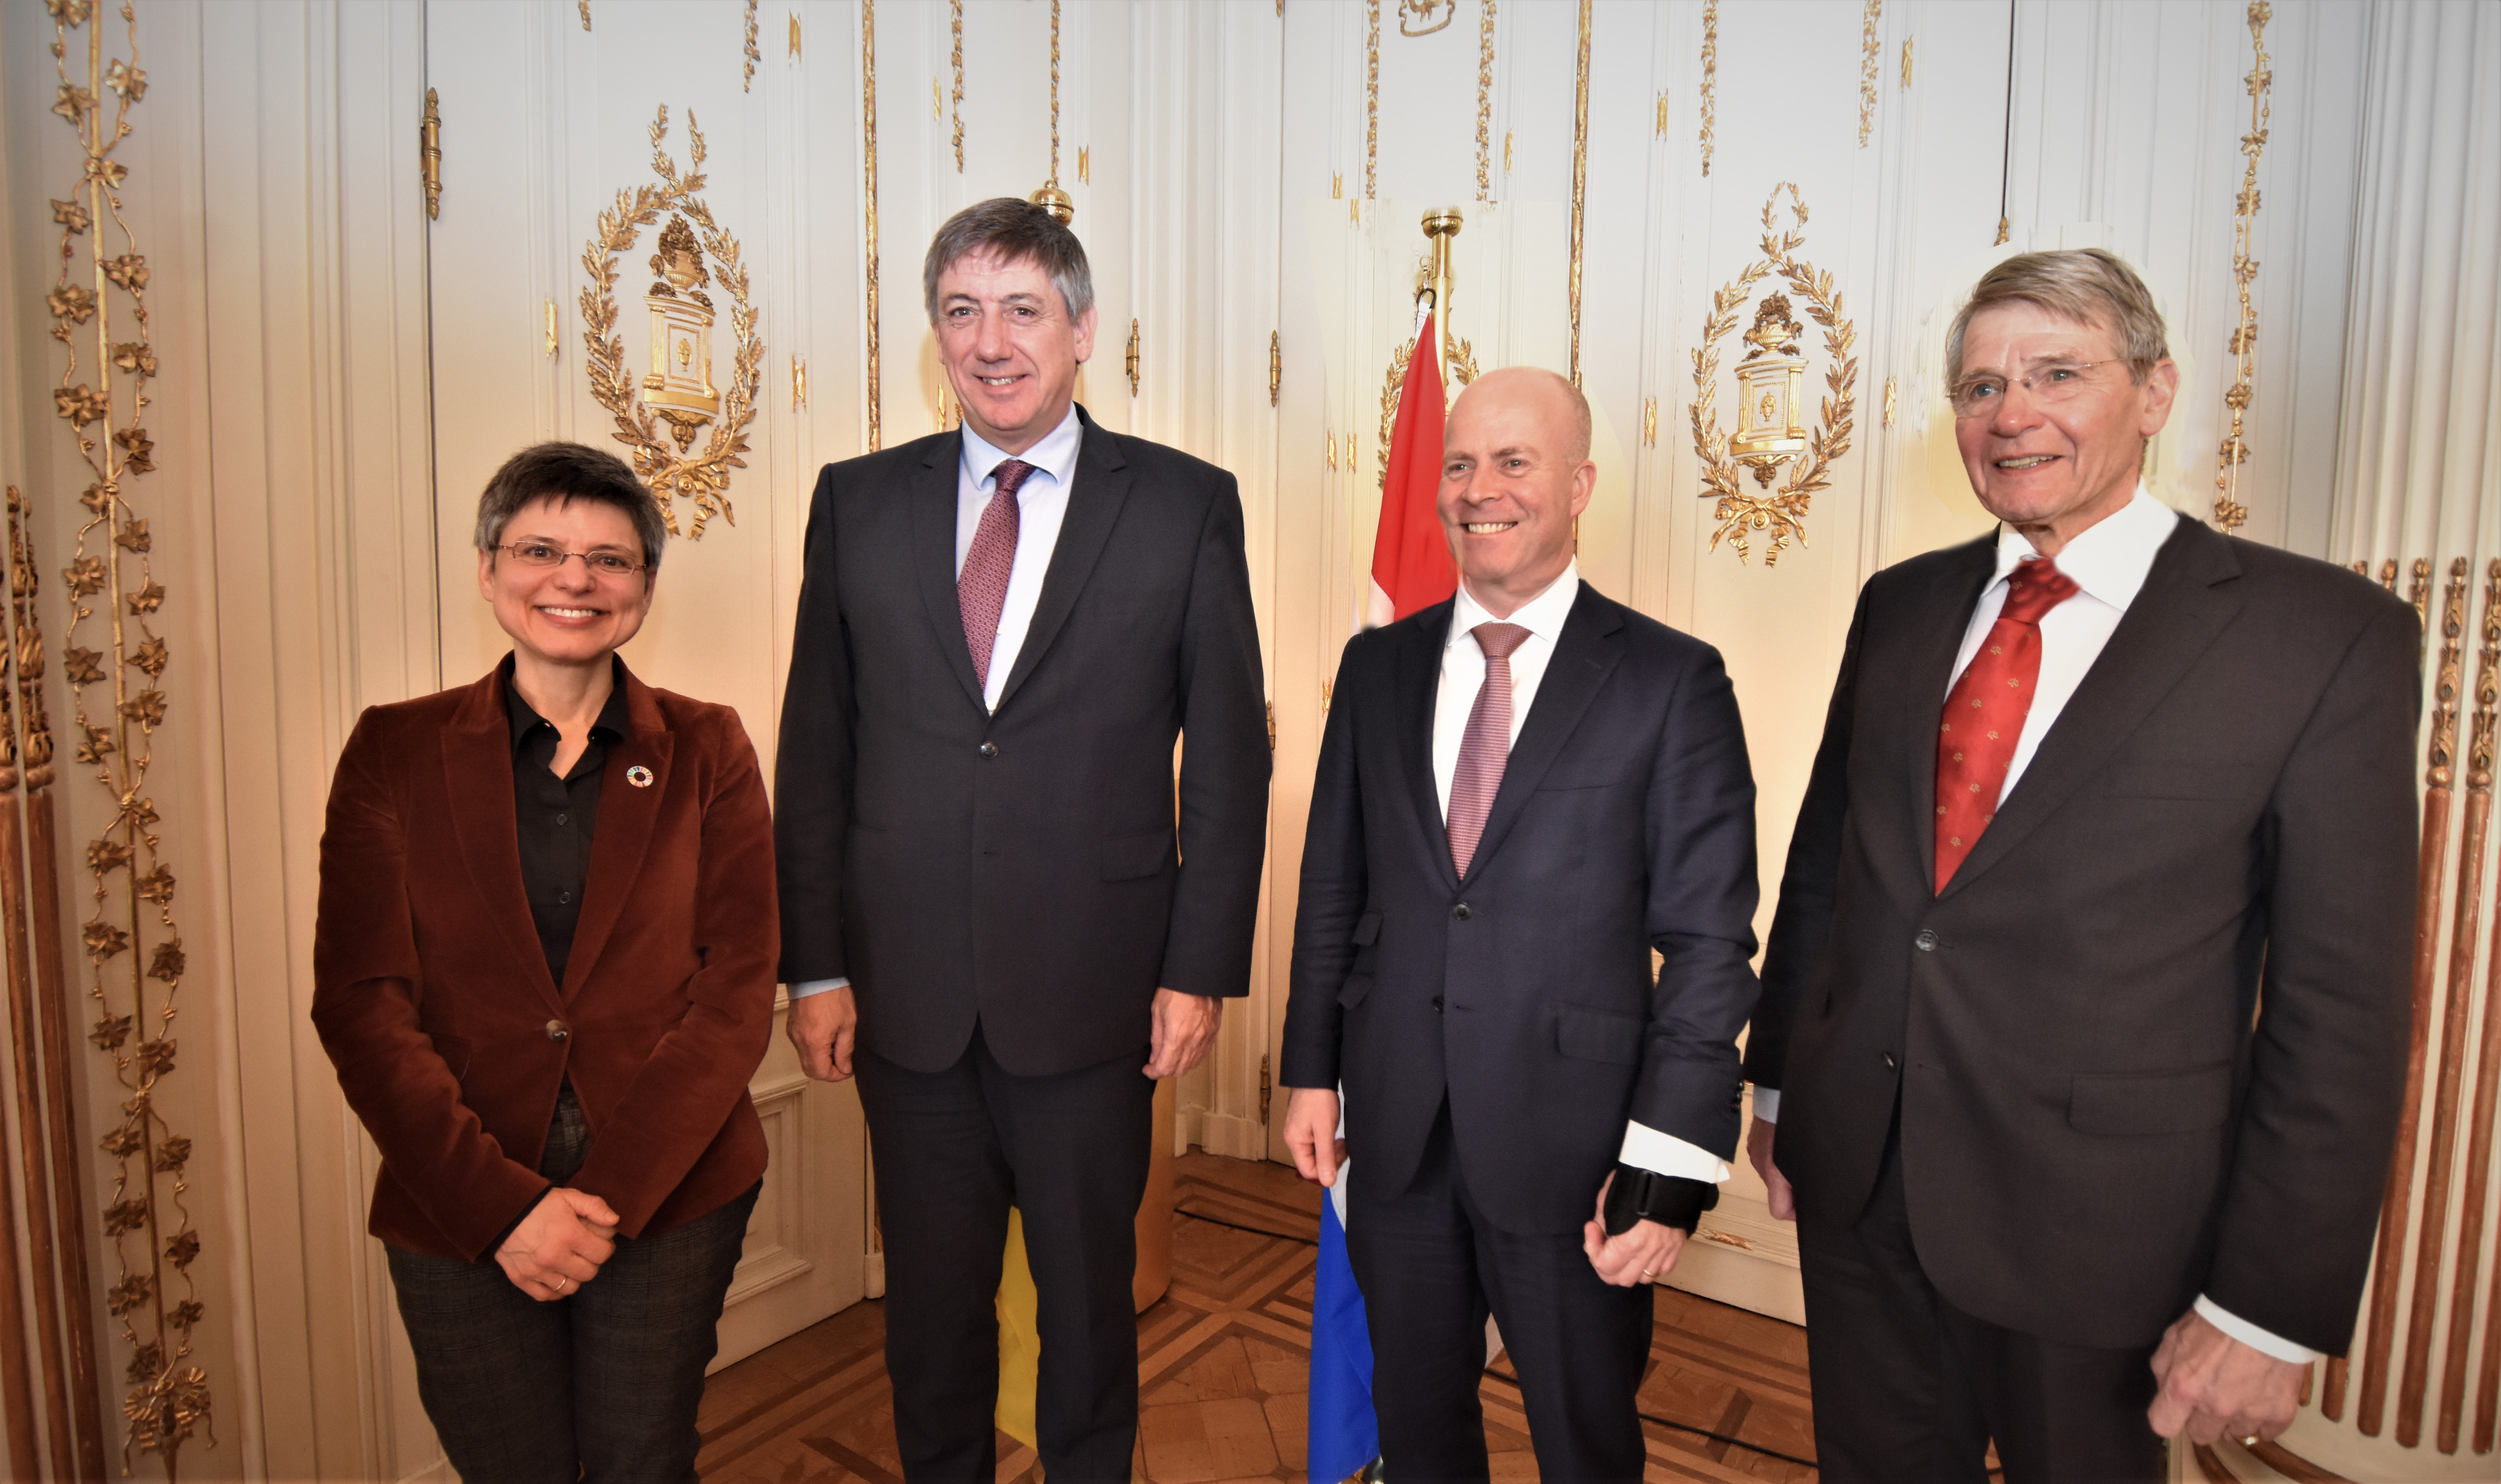 Antwerp governor Berx, minister-president Jambon, minister Knops and  vice-president Raad van State Hein Donner